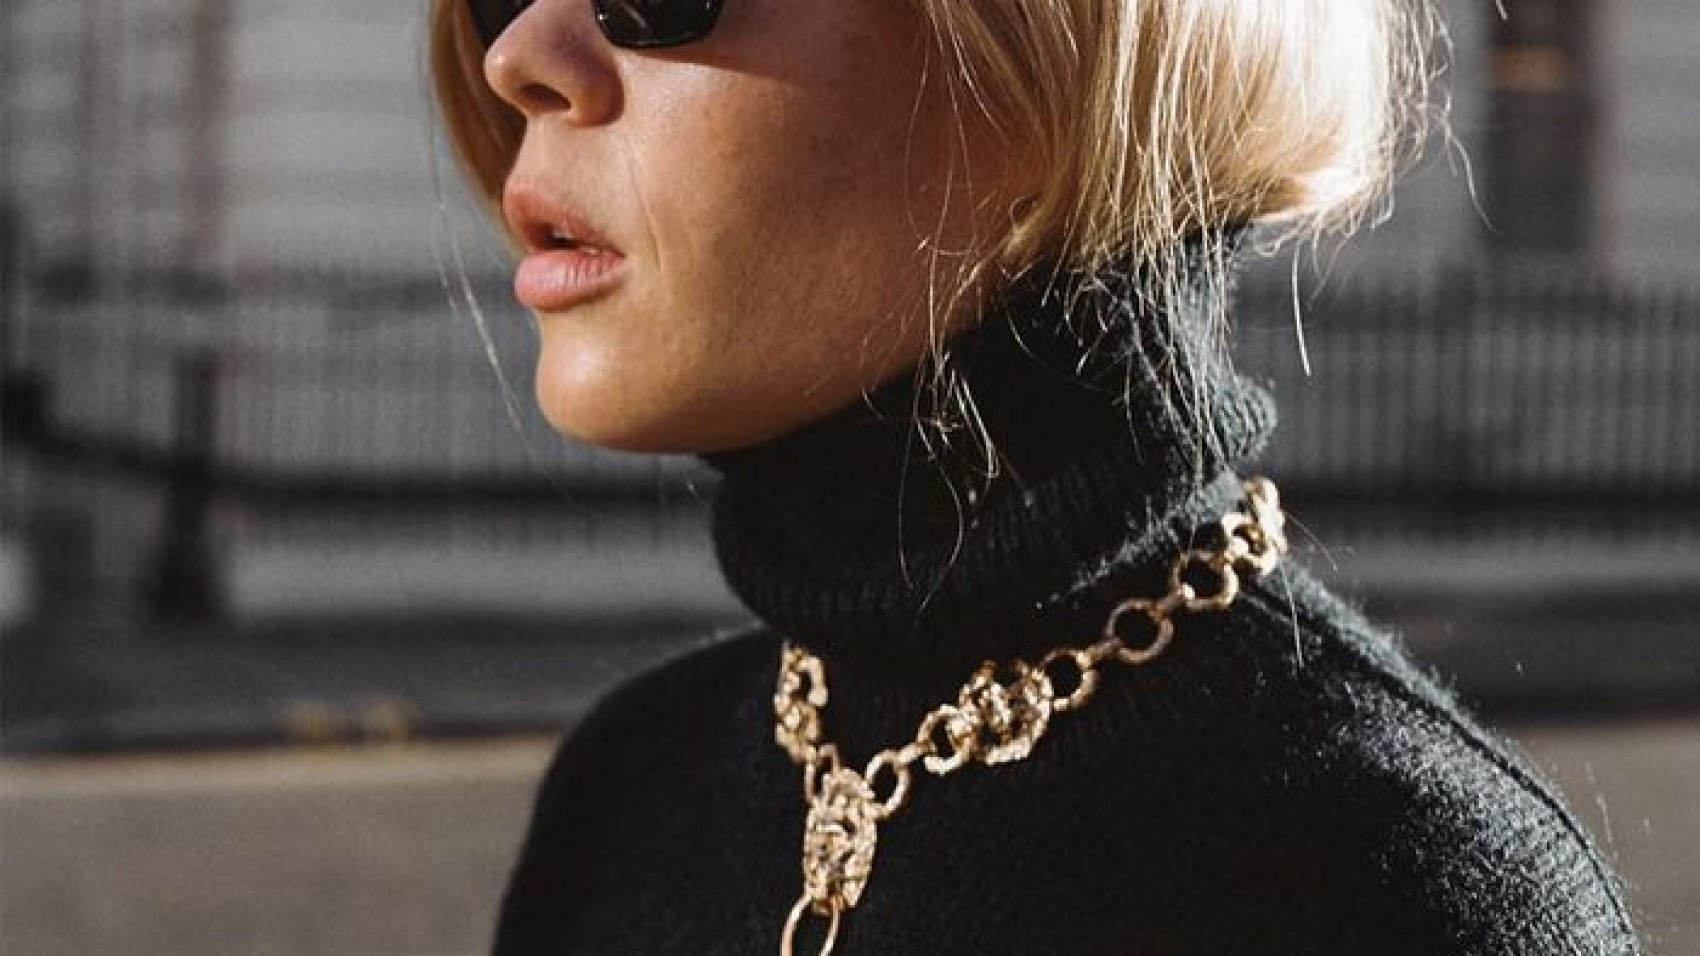 3 ways to wear the chain necklaces